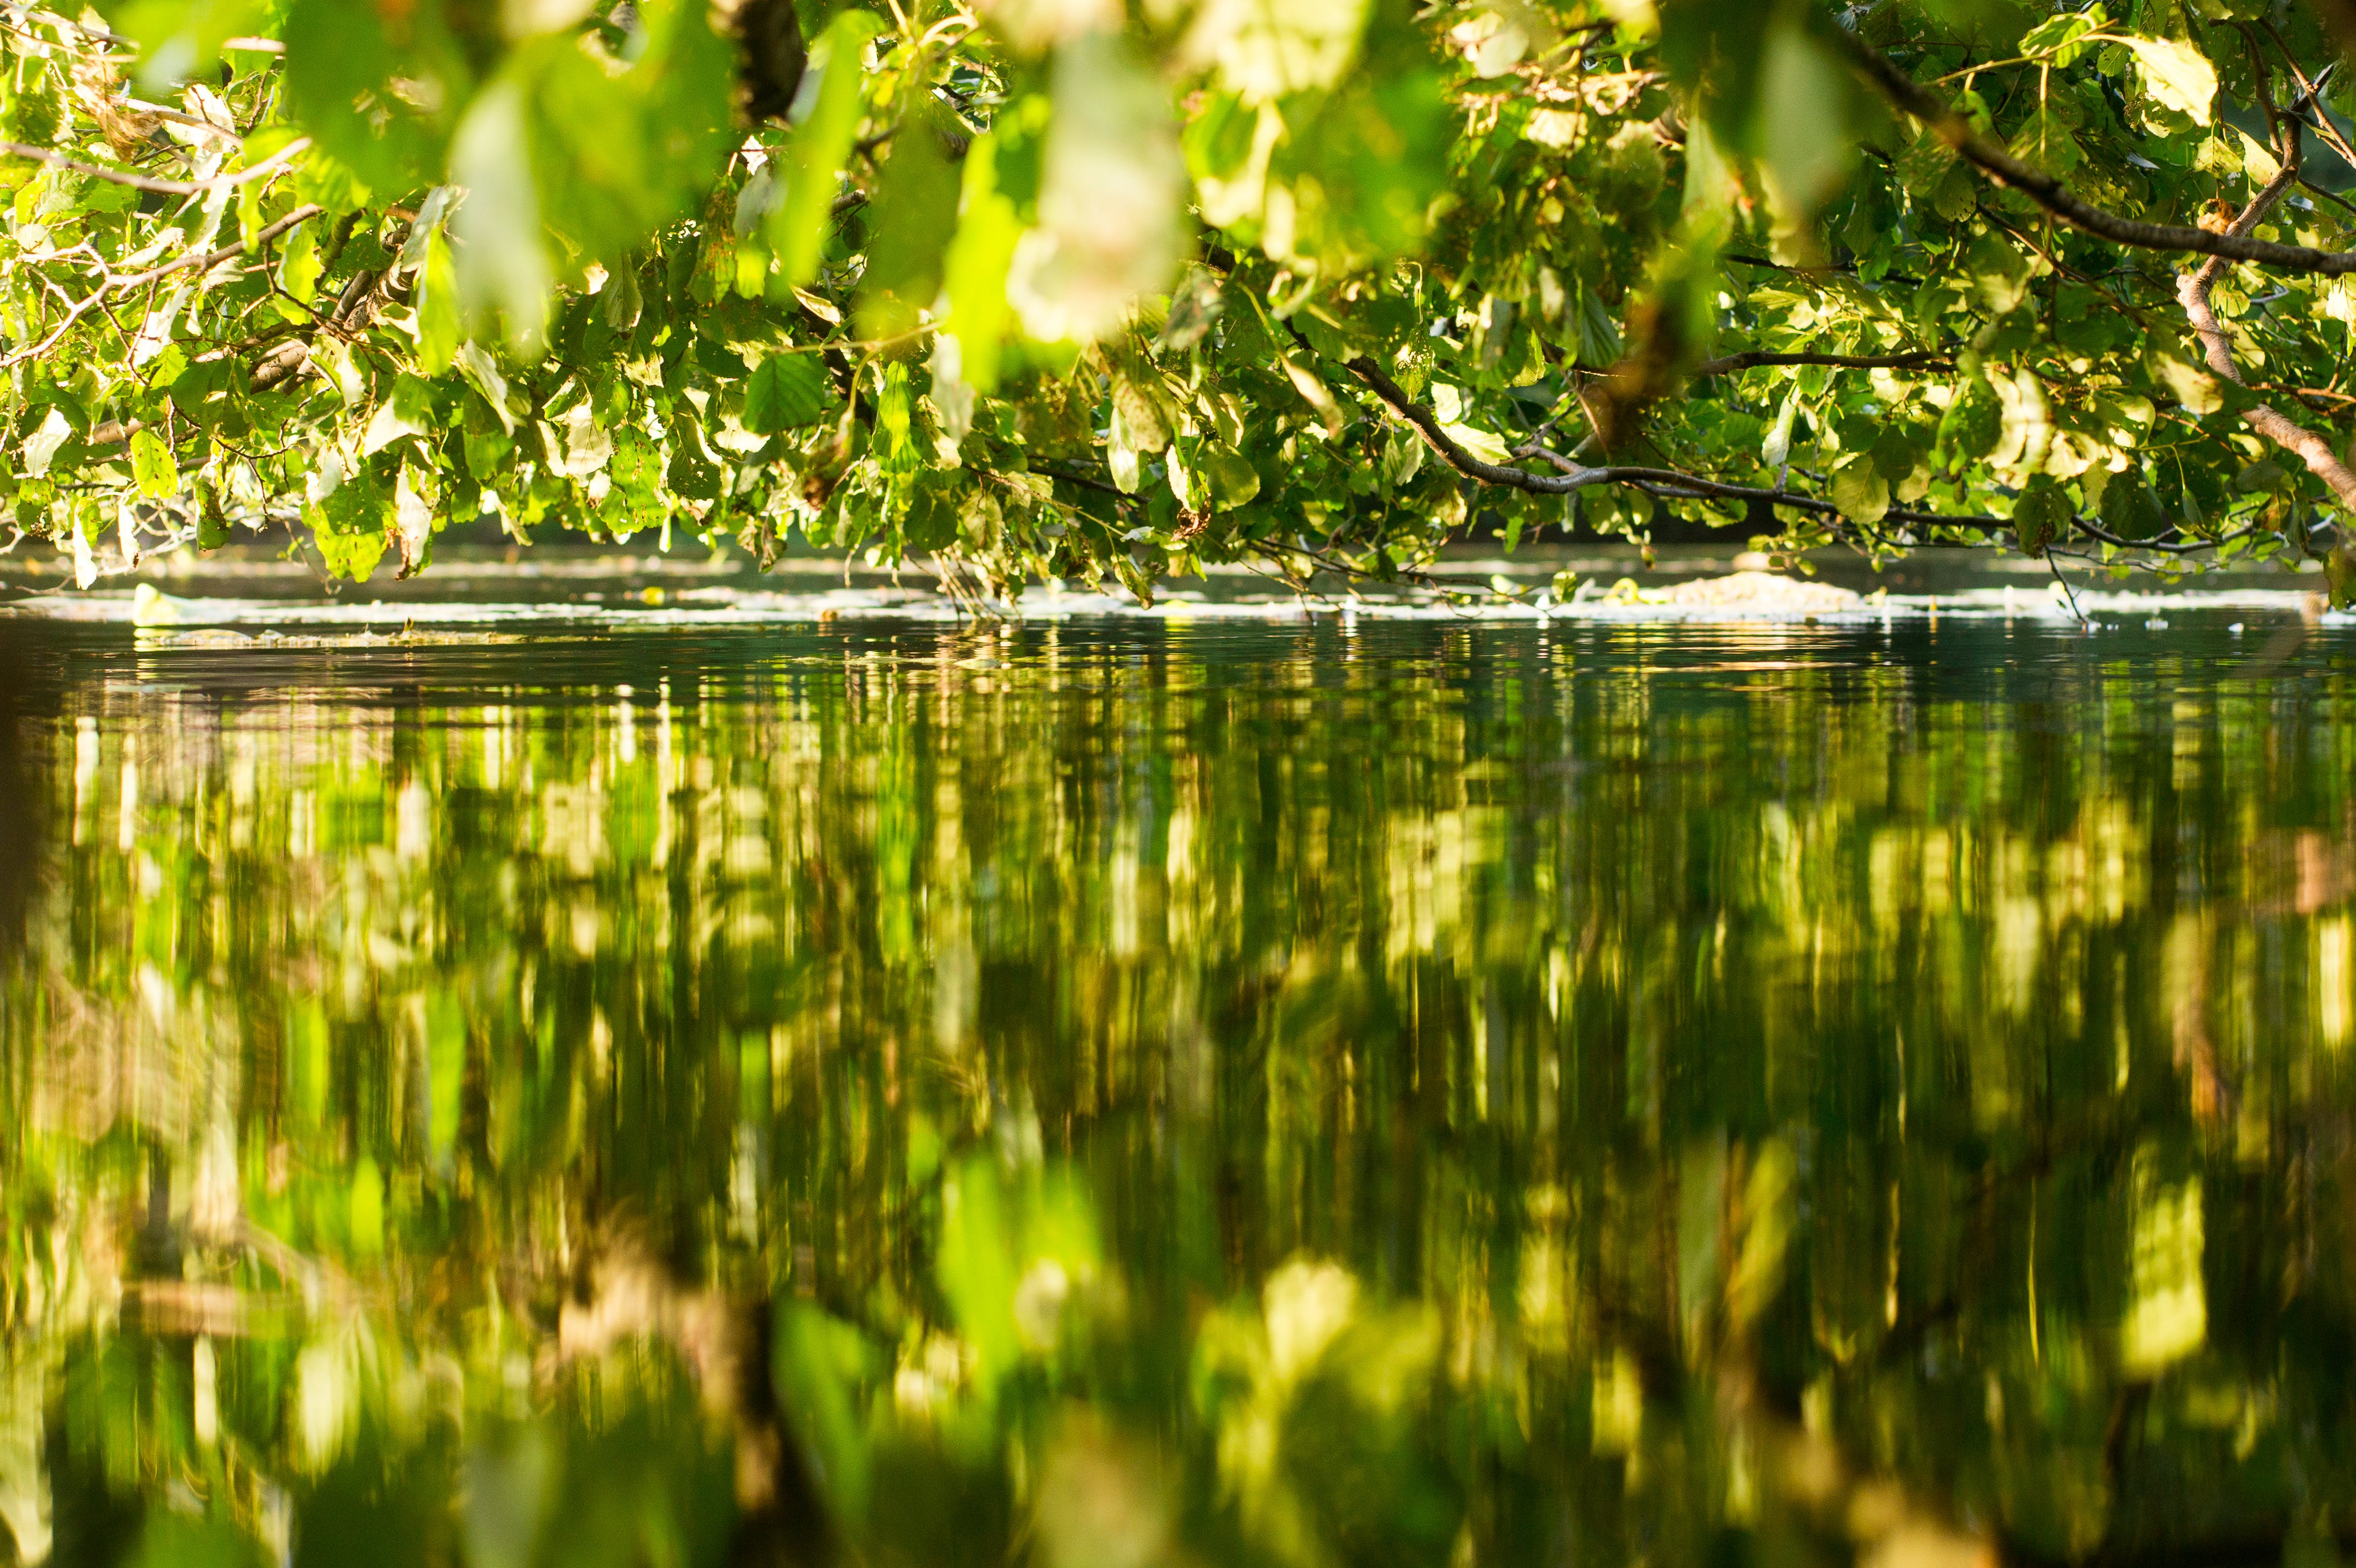 Free stock photo of foliage, green, Last Days of Summer, over the water